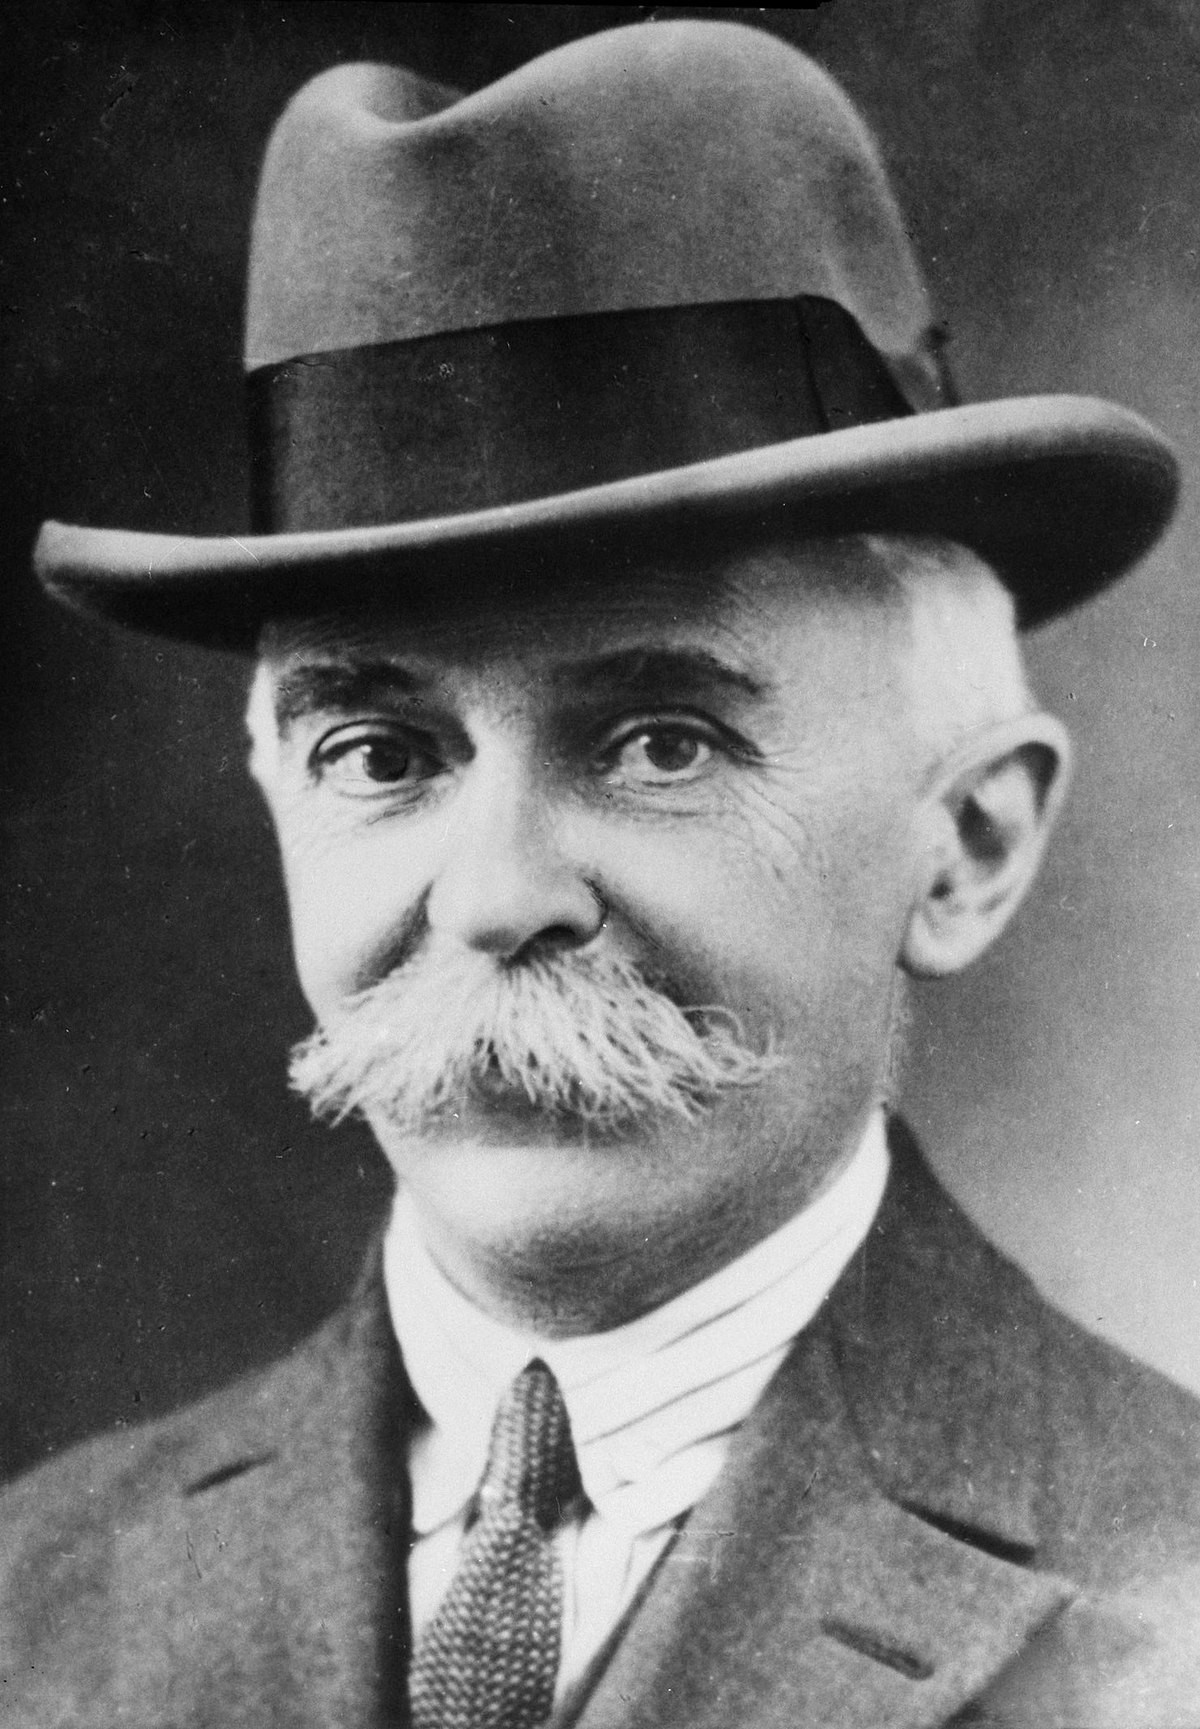 Baron Pierre de Coubertin stepped down as IOC President during World War One to serve in the French army ©Getty Images